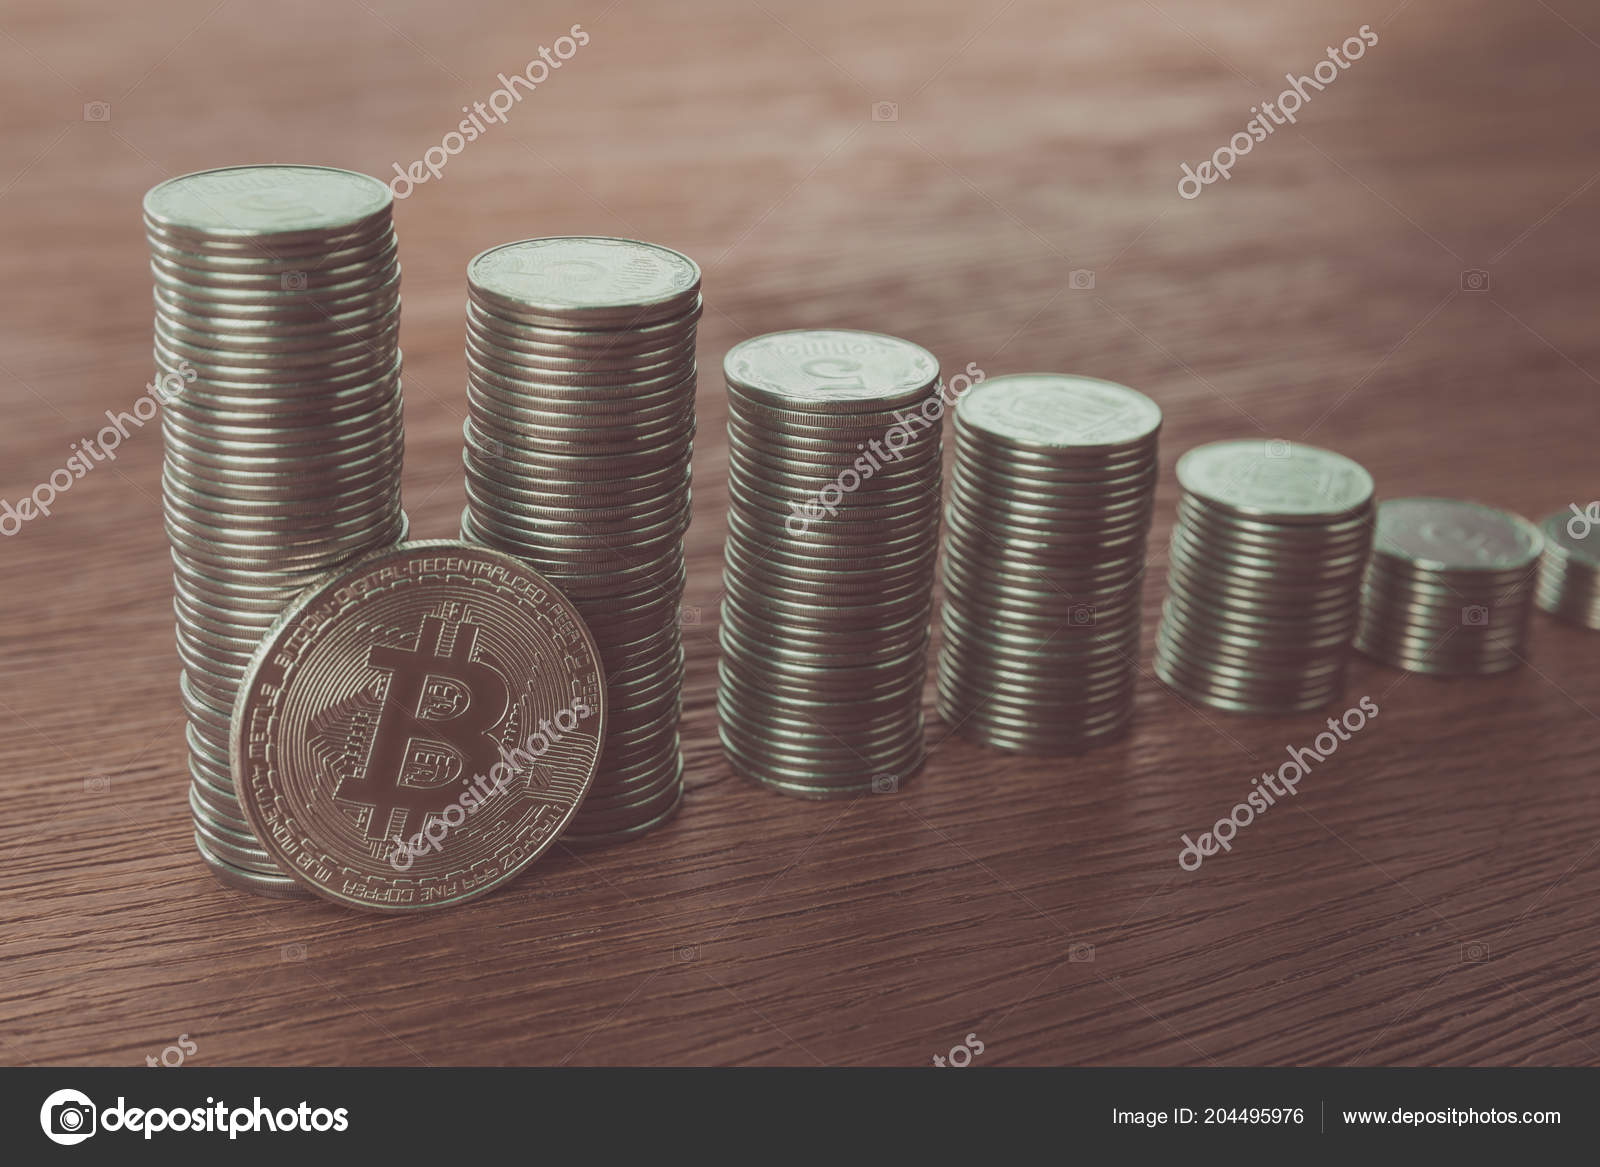 Bitcoin Stacks Coins Tabletop Saving Concept – Stock